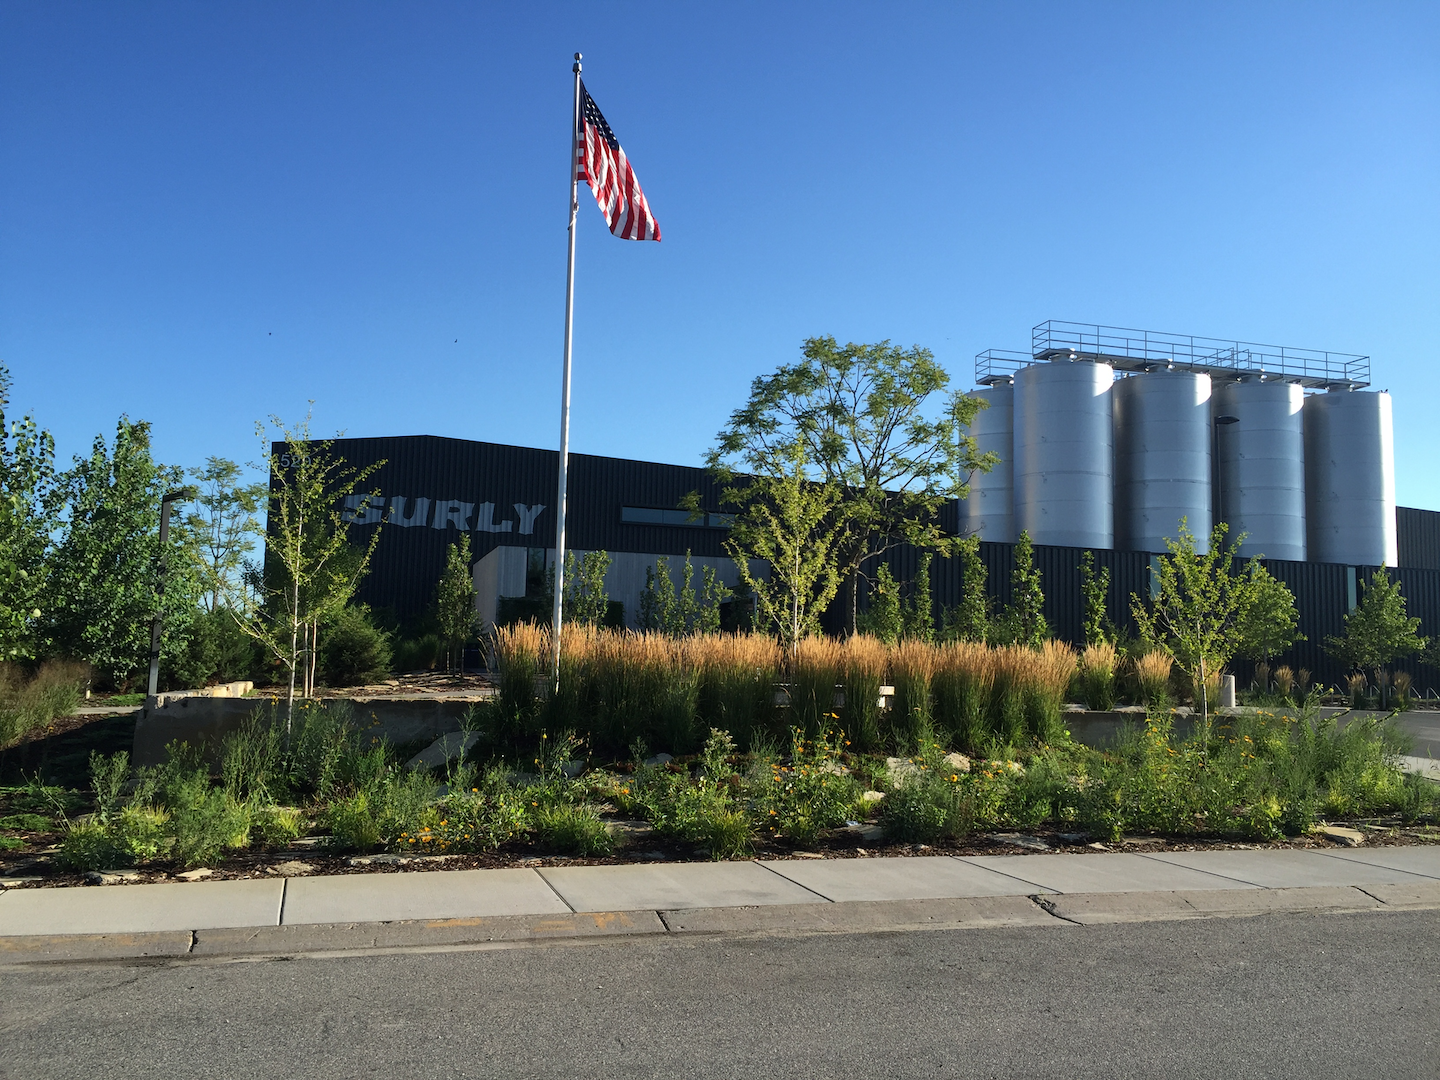 The Surly Brewing Co. in Minneapolis.